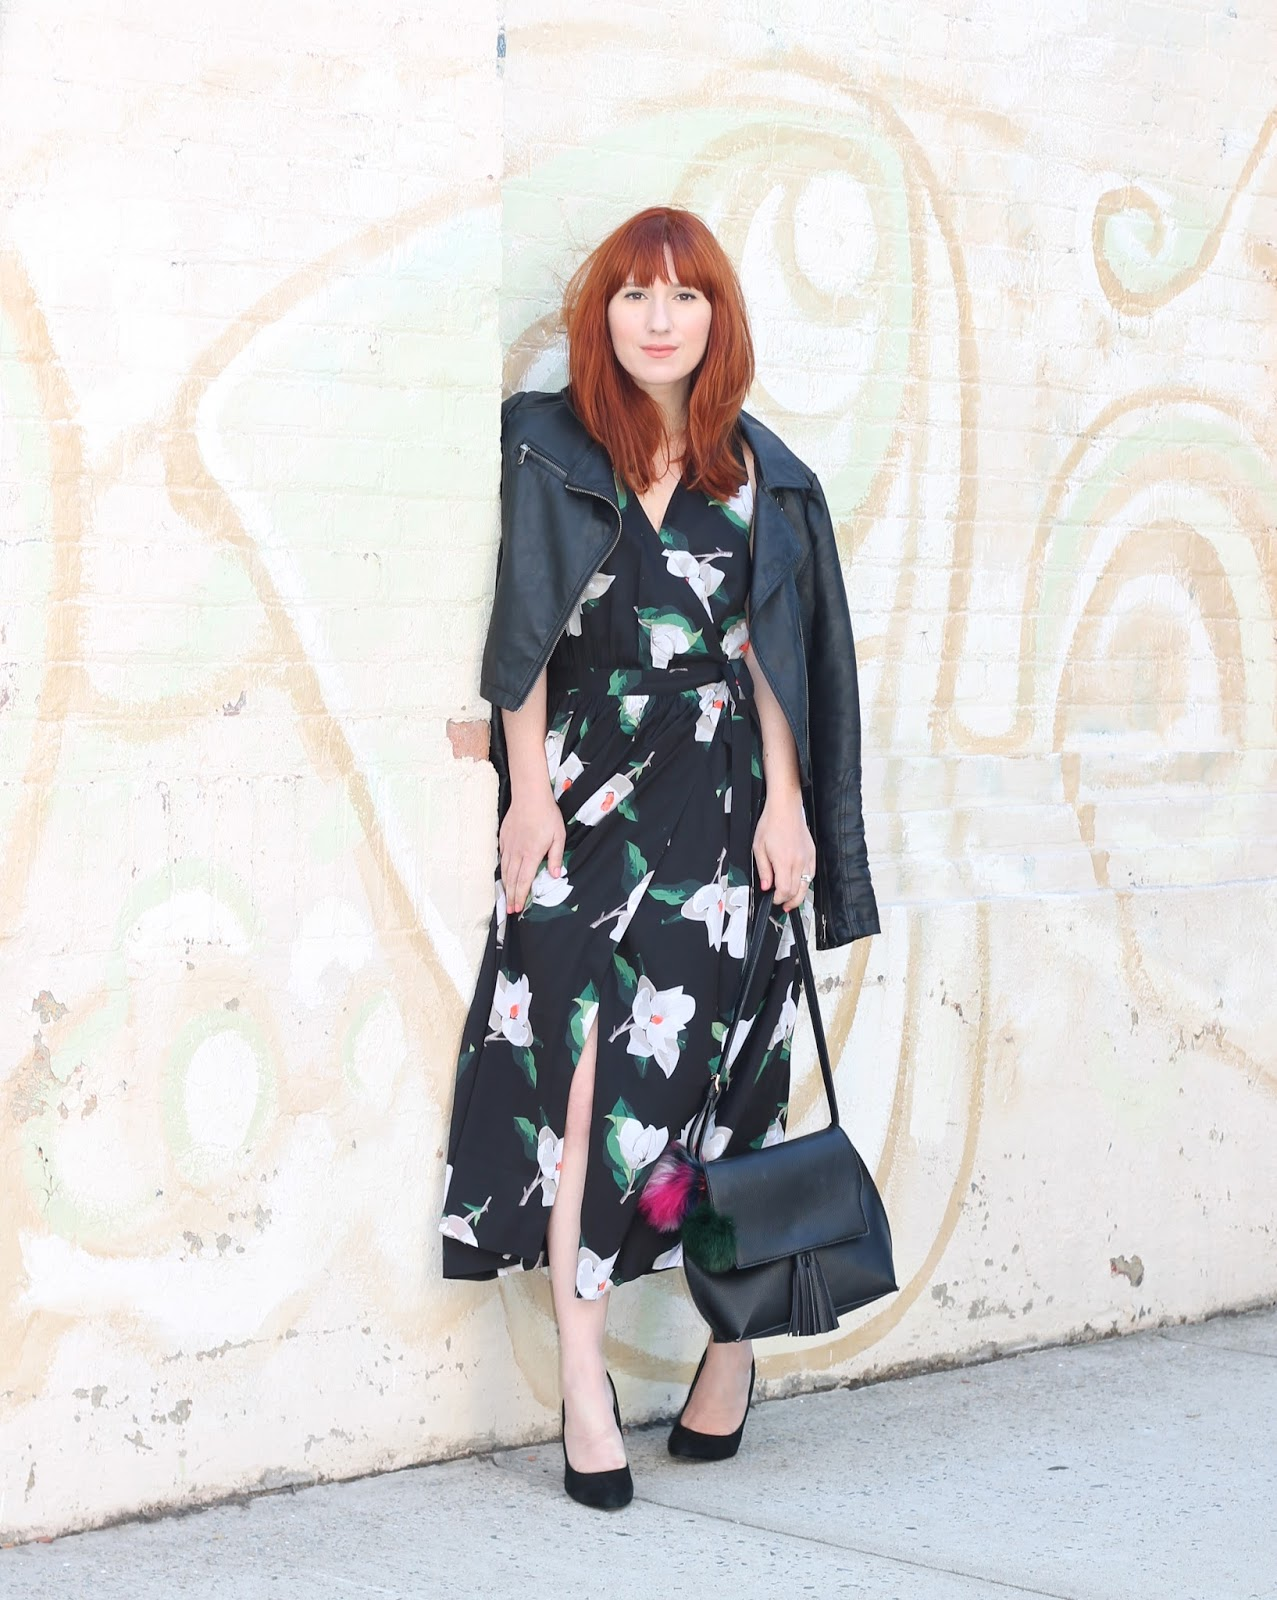 outfits ideas, wrap dress, florals, banana republic, leather jacket, layering, girly outfits, easy outfit ideas